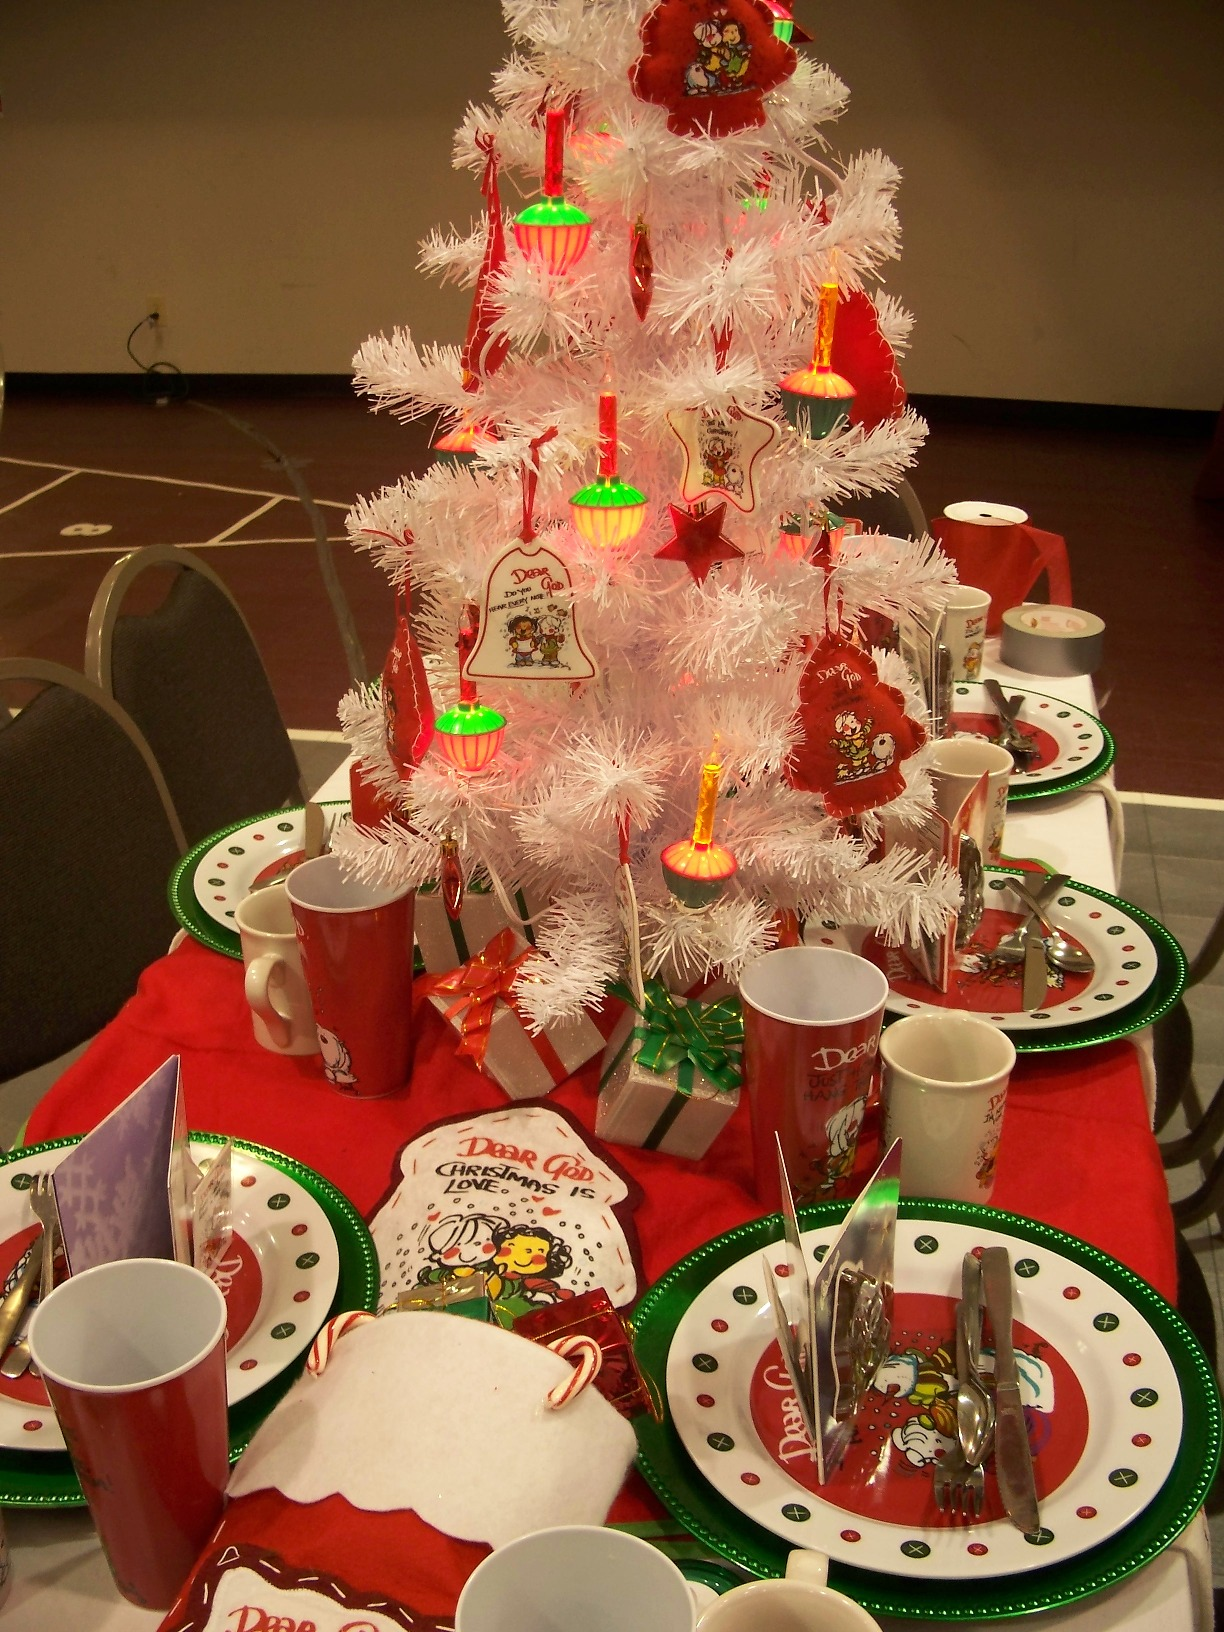 Christmas Party Table Decorations Ideas.25 Amazing Christmas Party Decoration Ideas Wow Decor